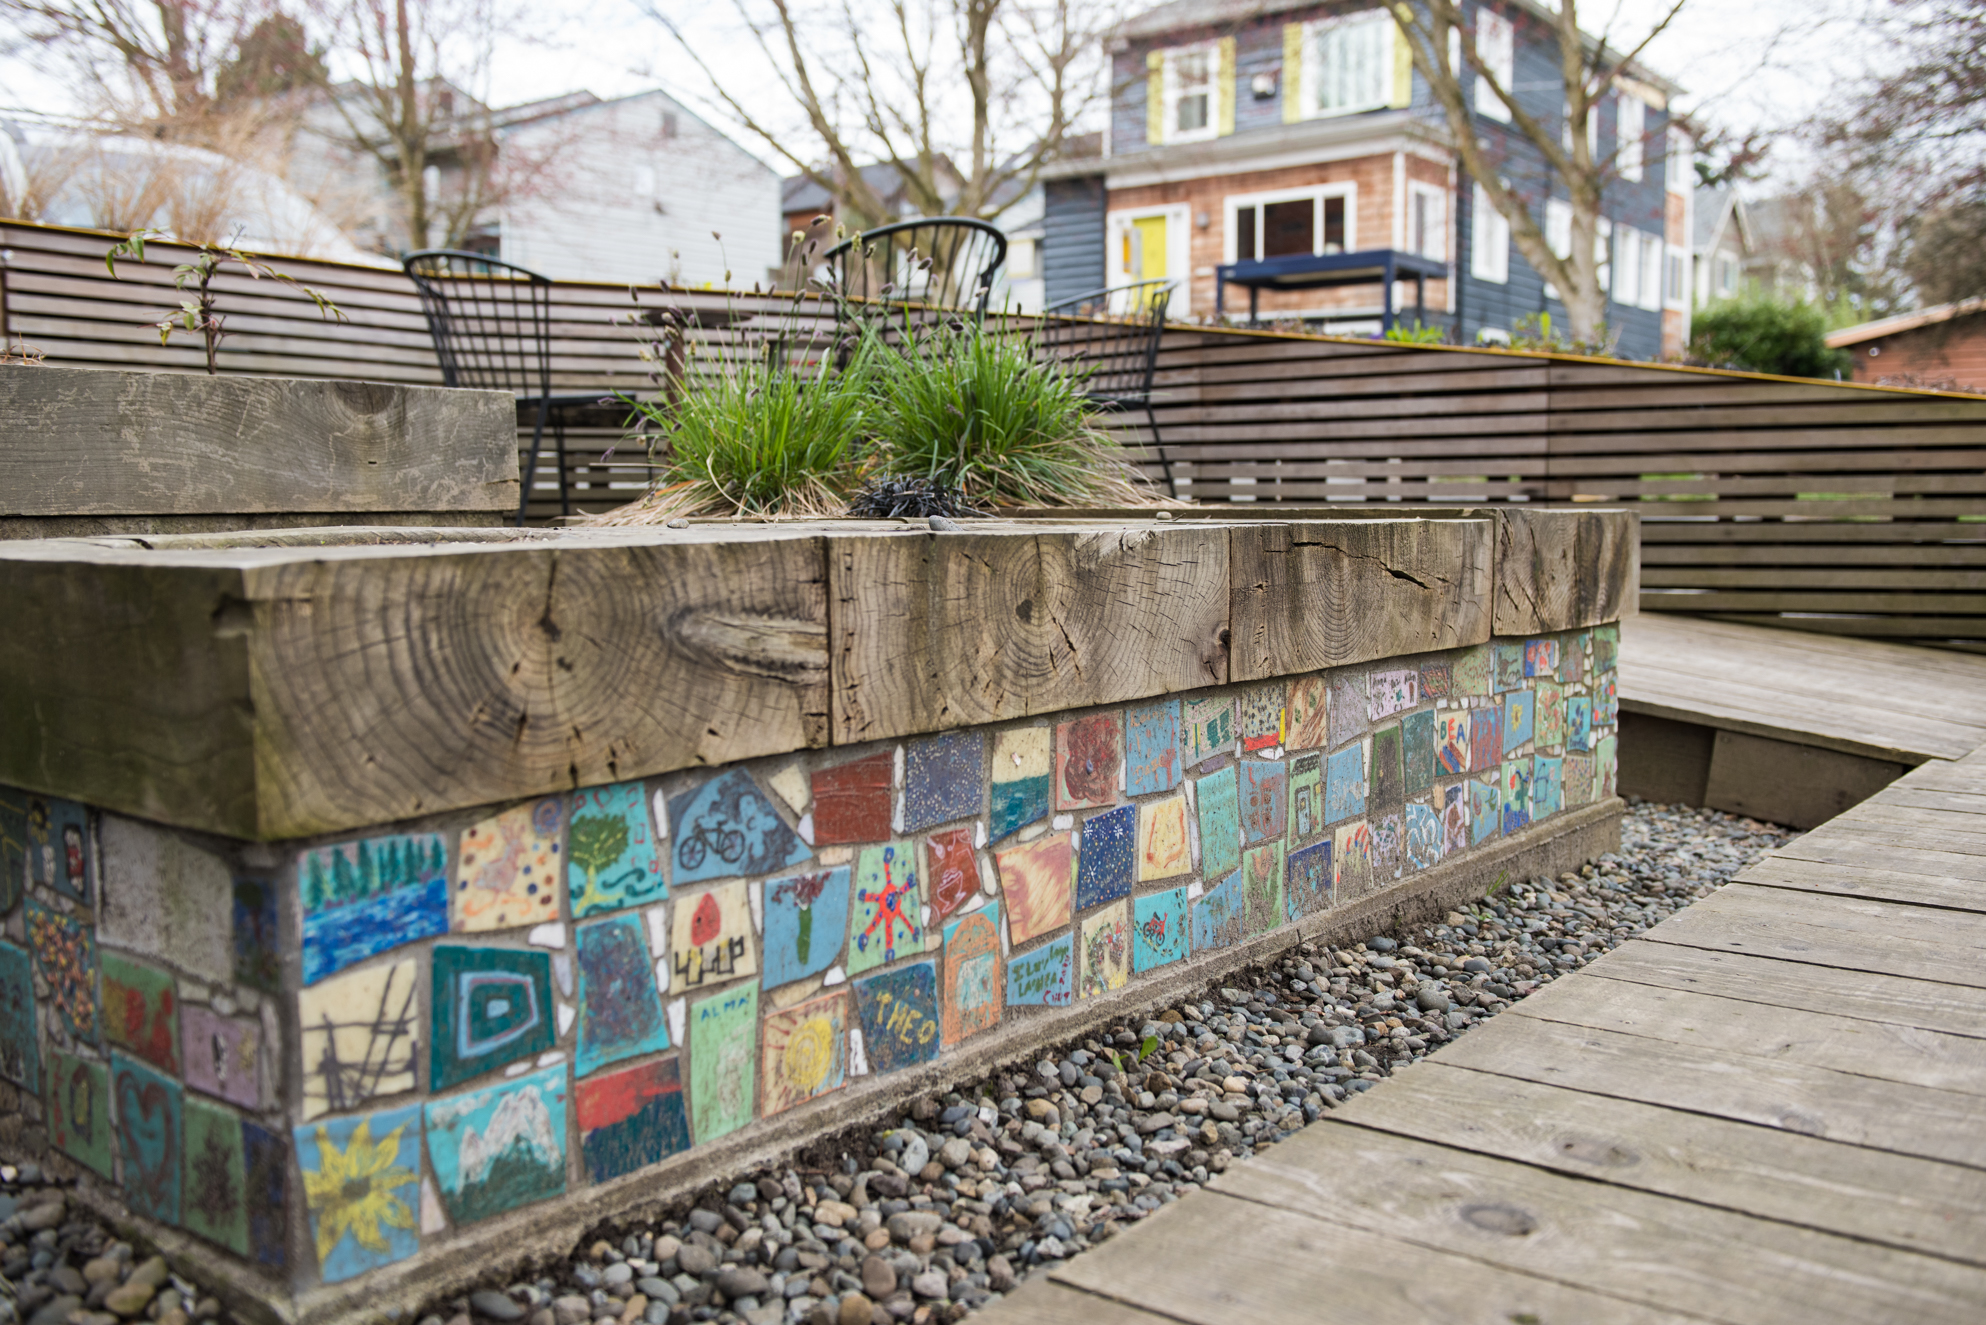 25th and Union Parklet: Landscaping, a wooden platform, colorful tiles contribute to making this mini-space a comfortable area to sit. Little Free Libraries are nearby. (Image: Natalia Dotto)